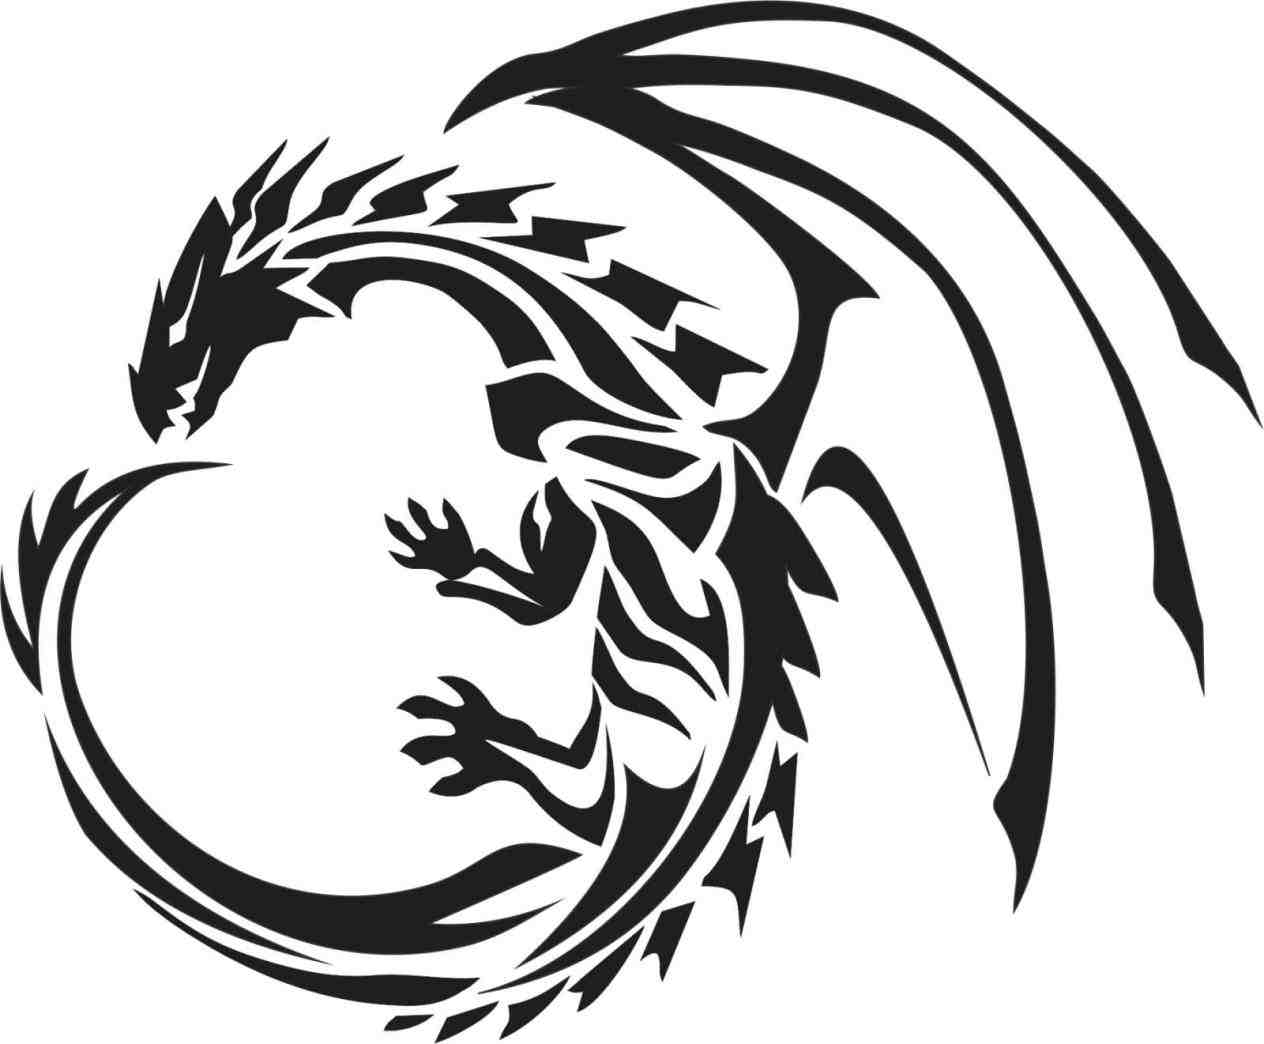 1264x1044 Dragon Head Coloring Pages Getcoloringpagescom Dragon